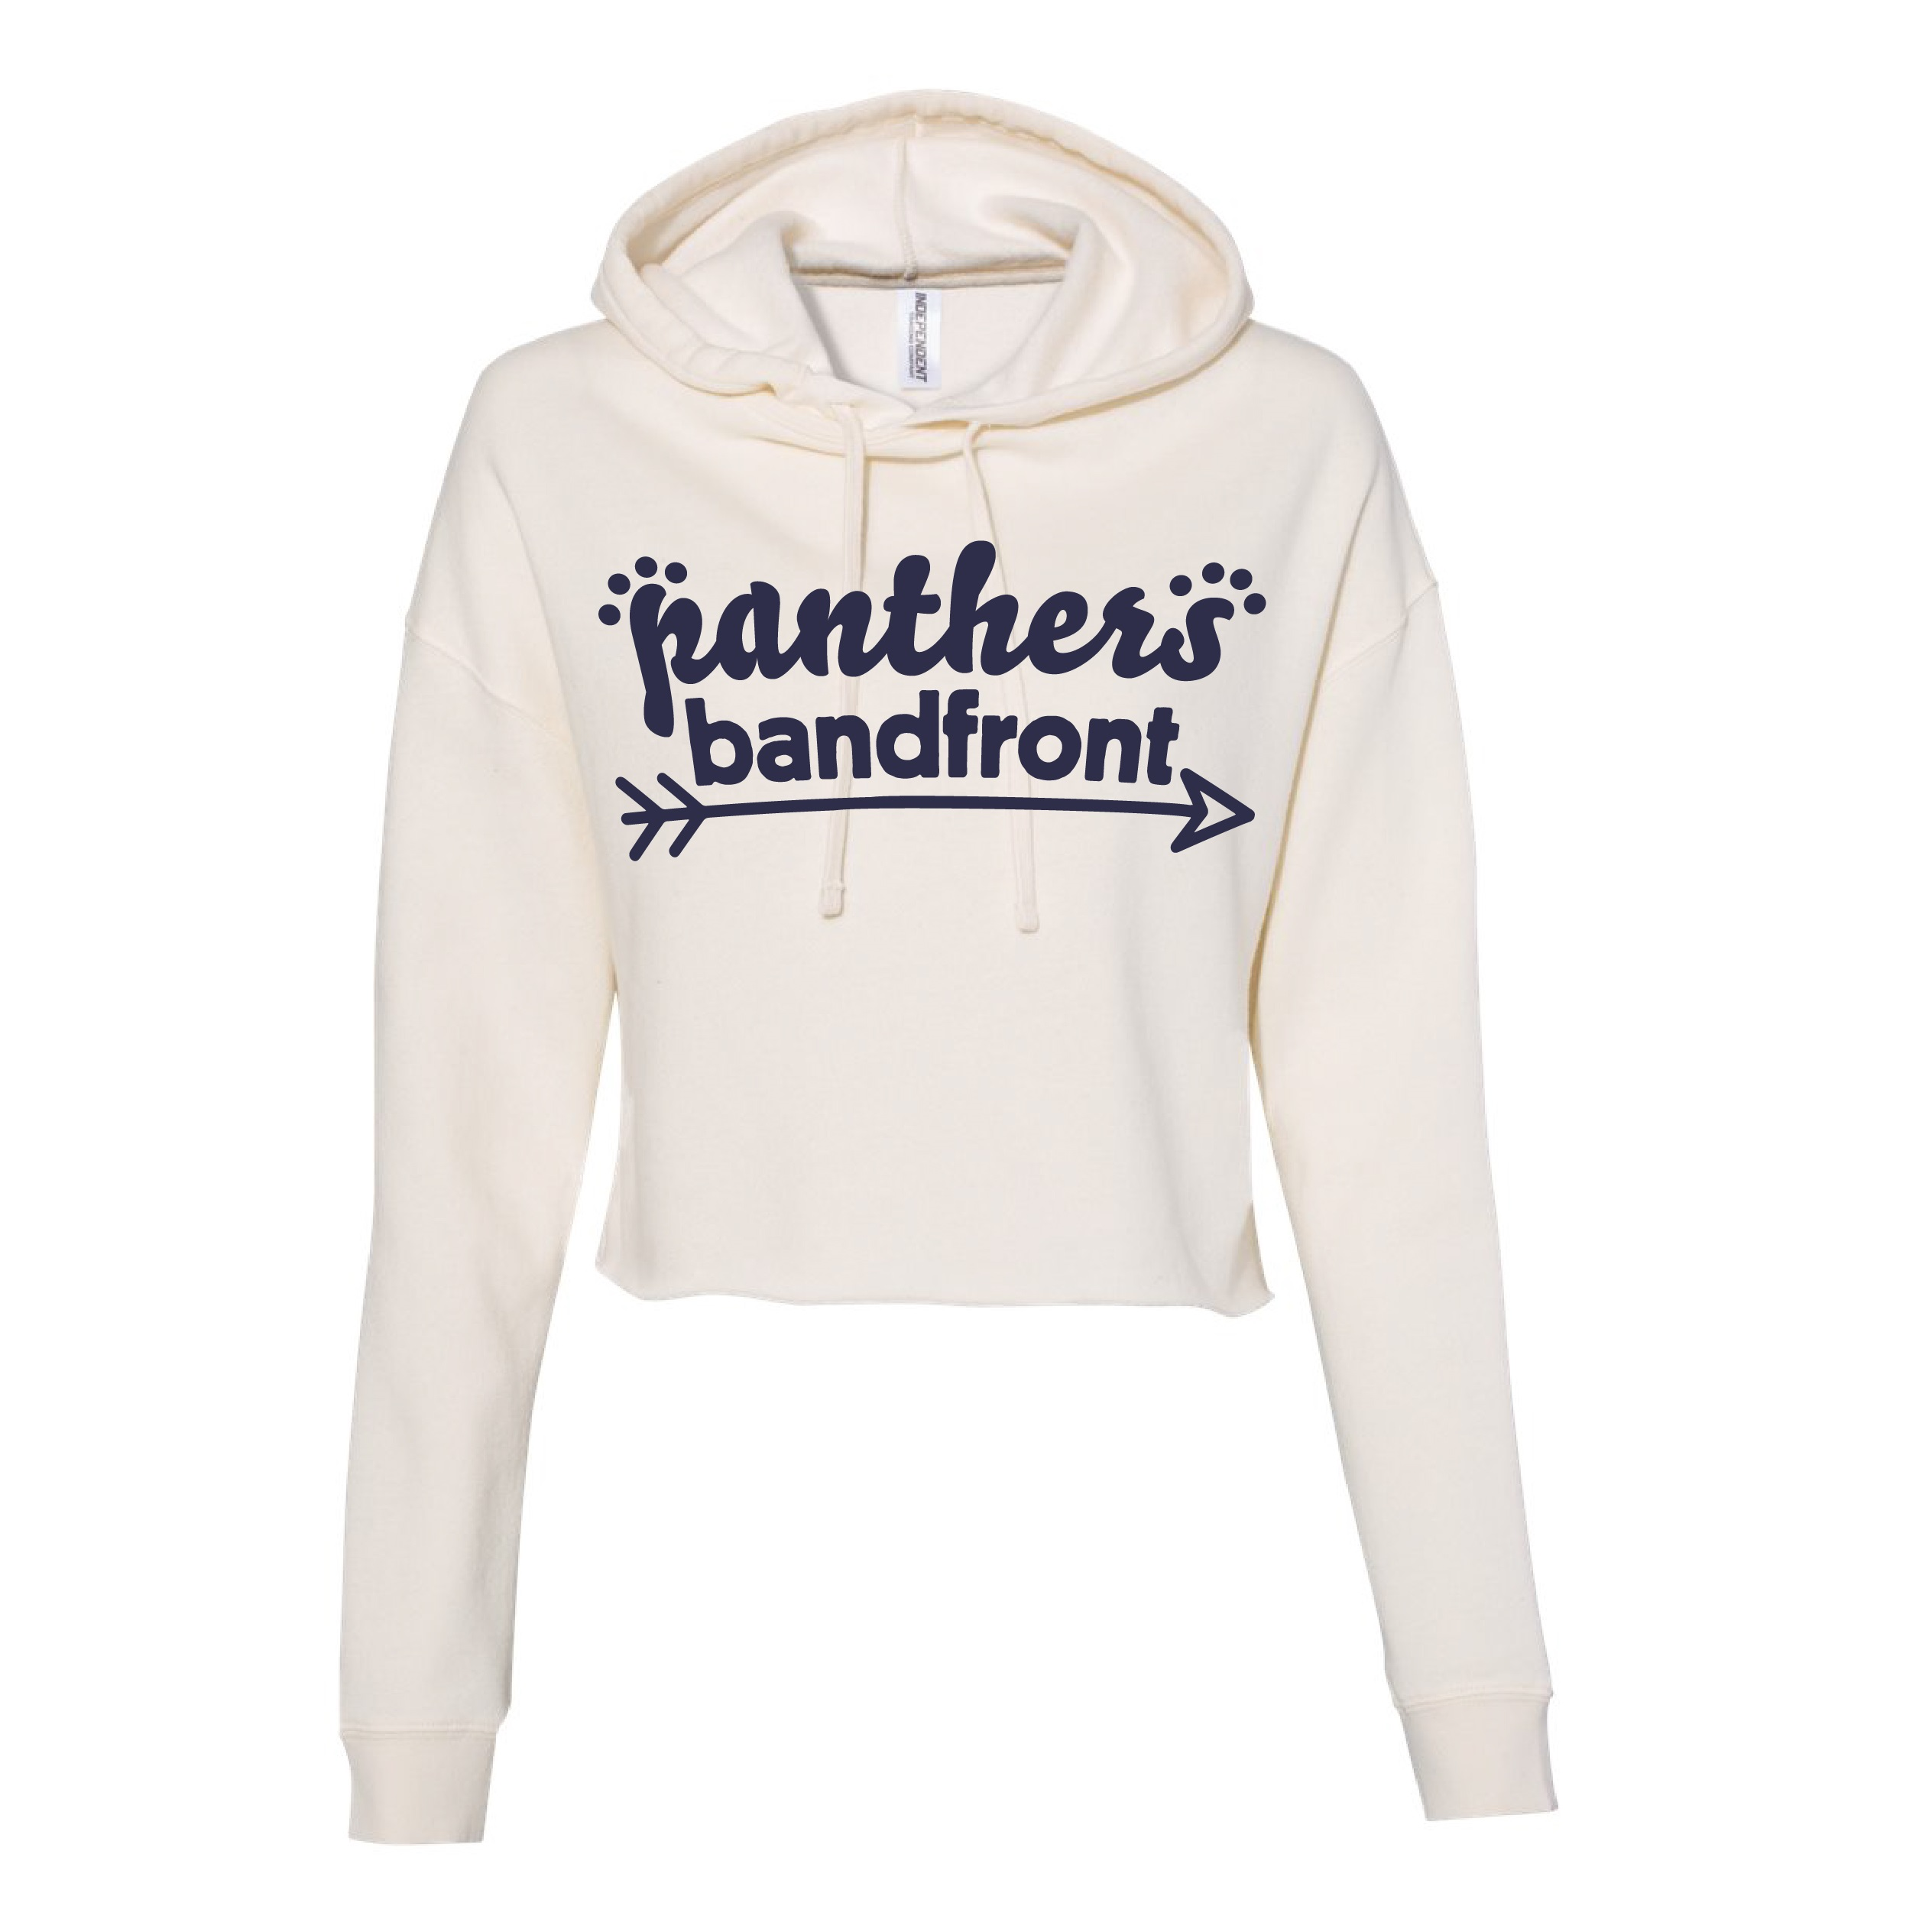 Independent Trading Co. Women's Lightweight Cropped Hoodie